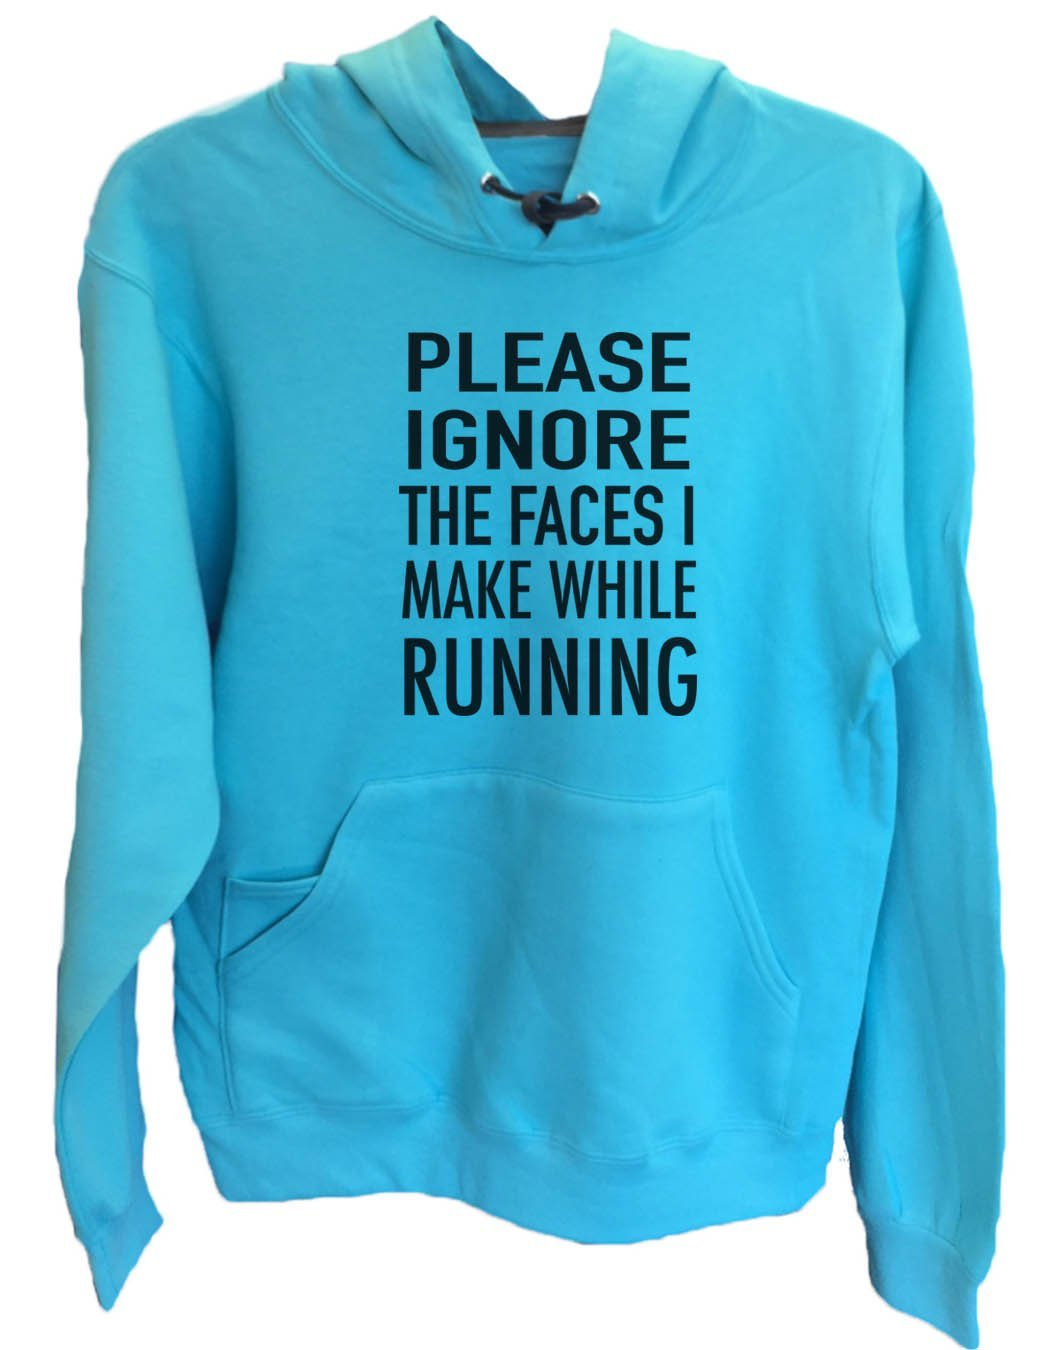 UNISEX HOODIE - Please ignore the faces i make when running - FUNNY MENS AND WOMENS HOODED SWEATSHIRTS - 560 Funny Shirt Small / Turquoise